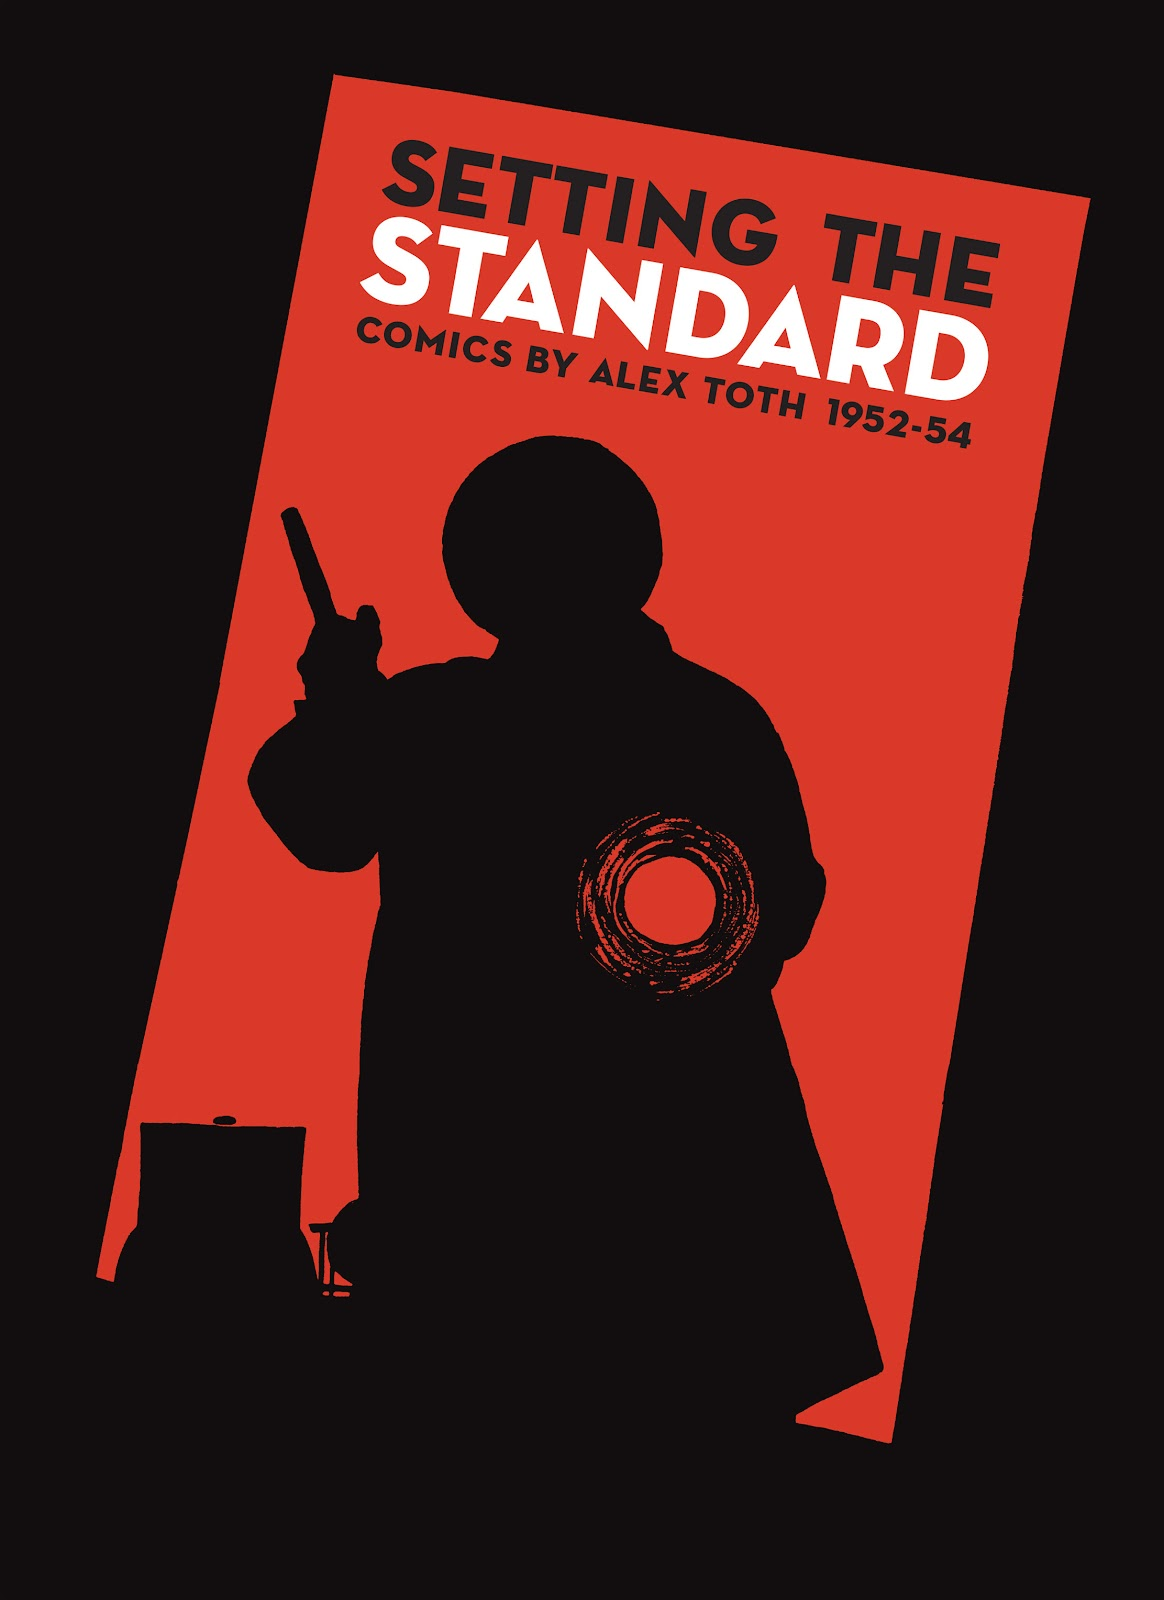 Read online Setting the Standard: Comics by Alex Toth 1952-1954 comic -  Issue # TPB (Part 1) - 2